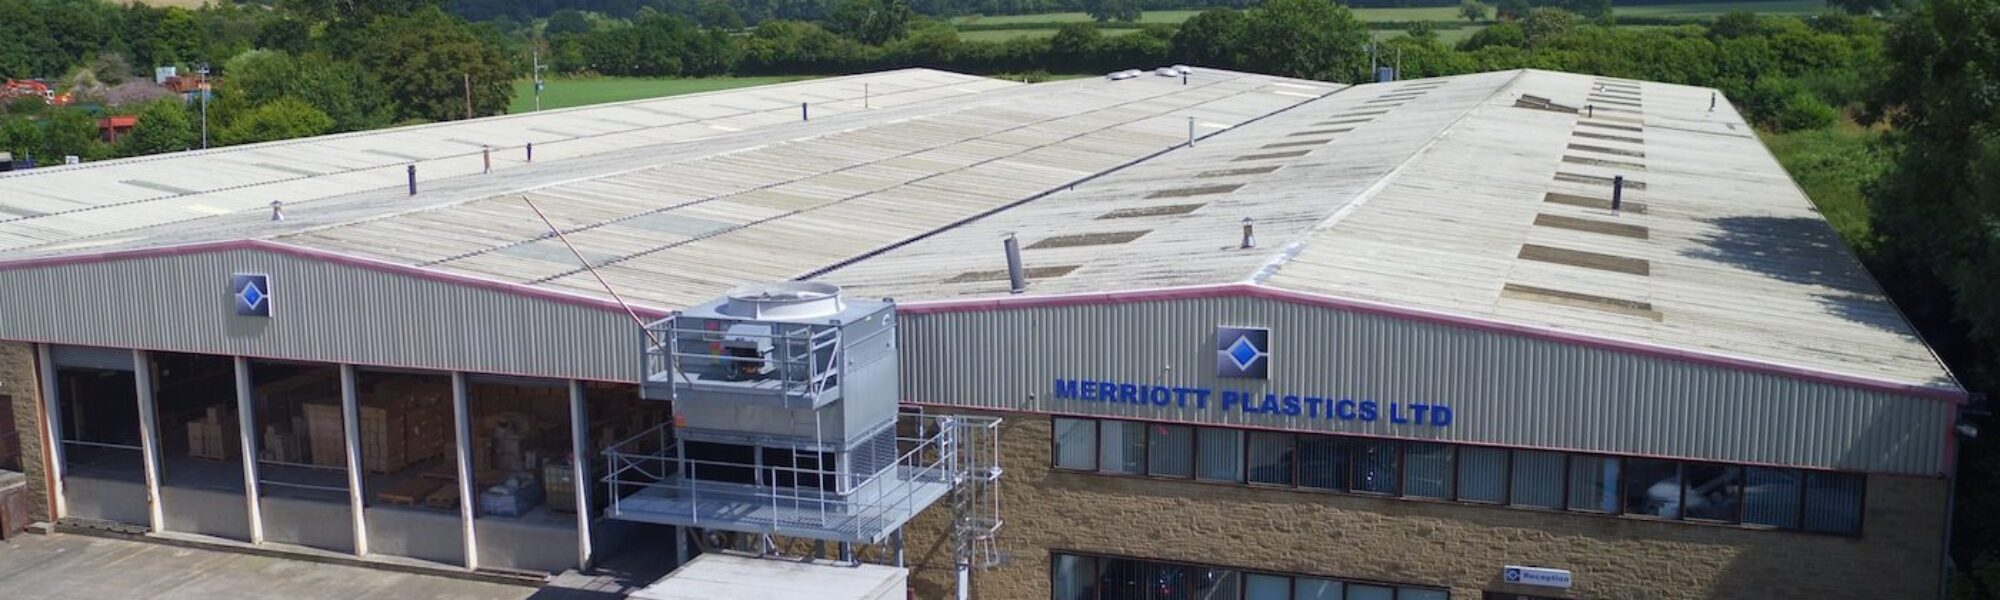 Merriot Plastics Building